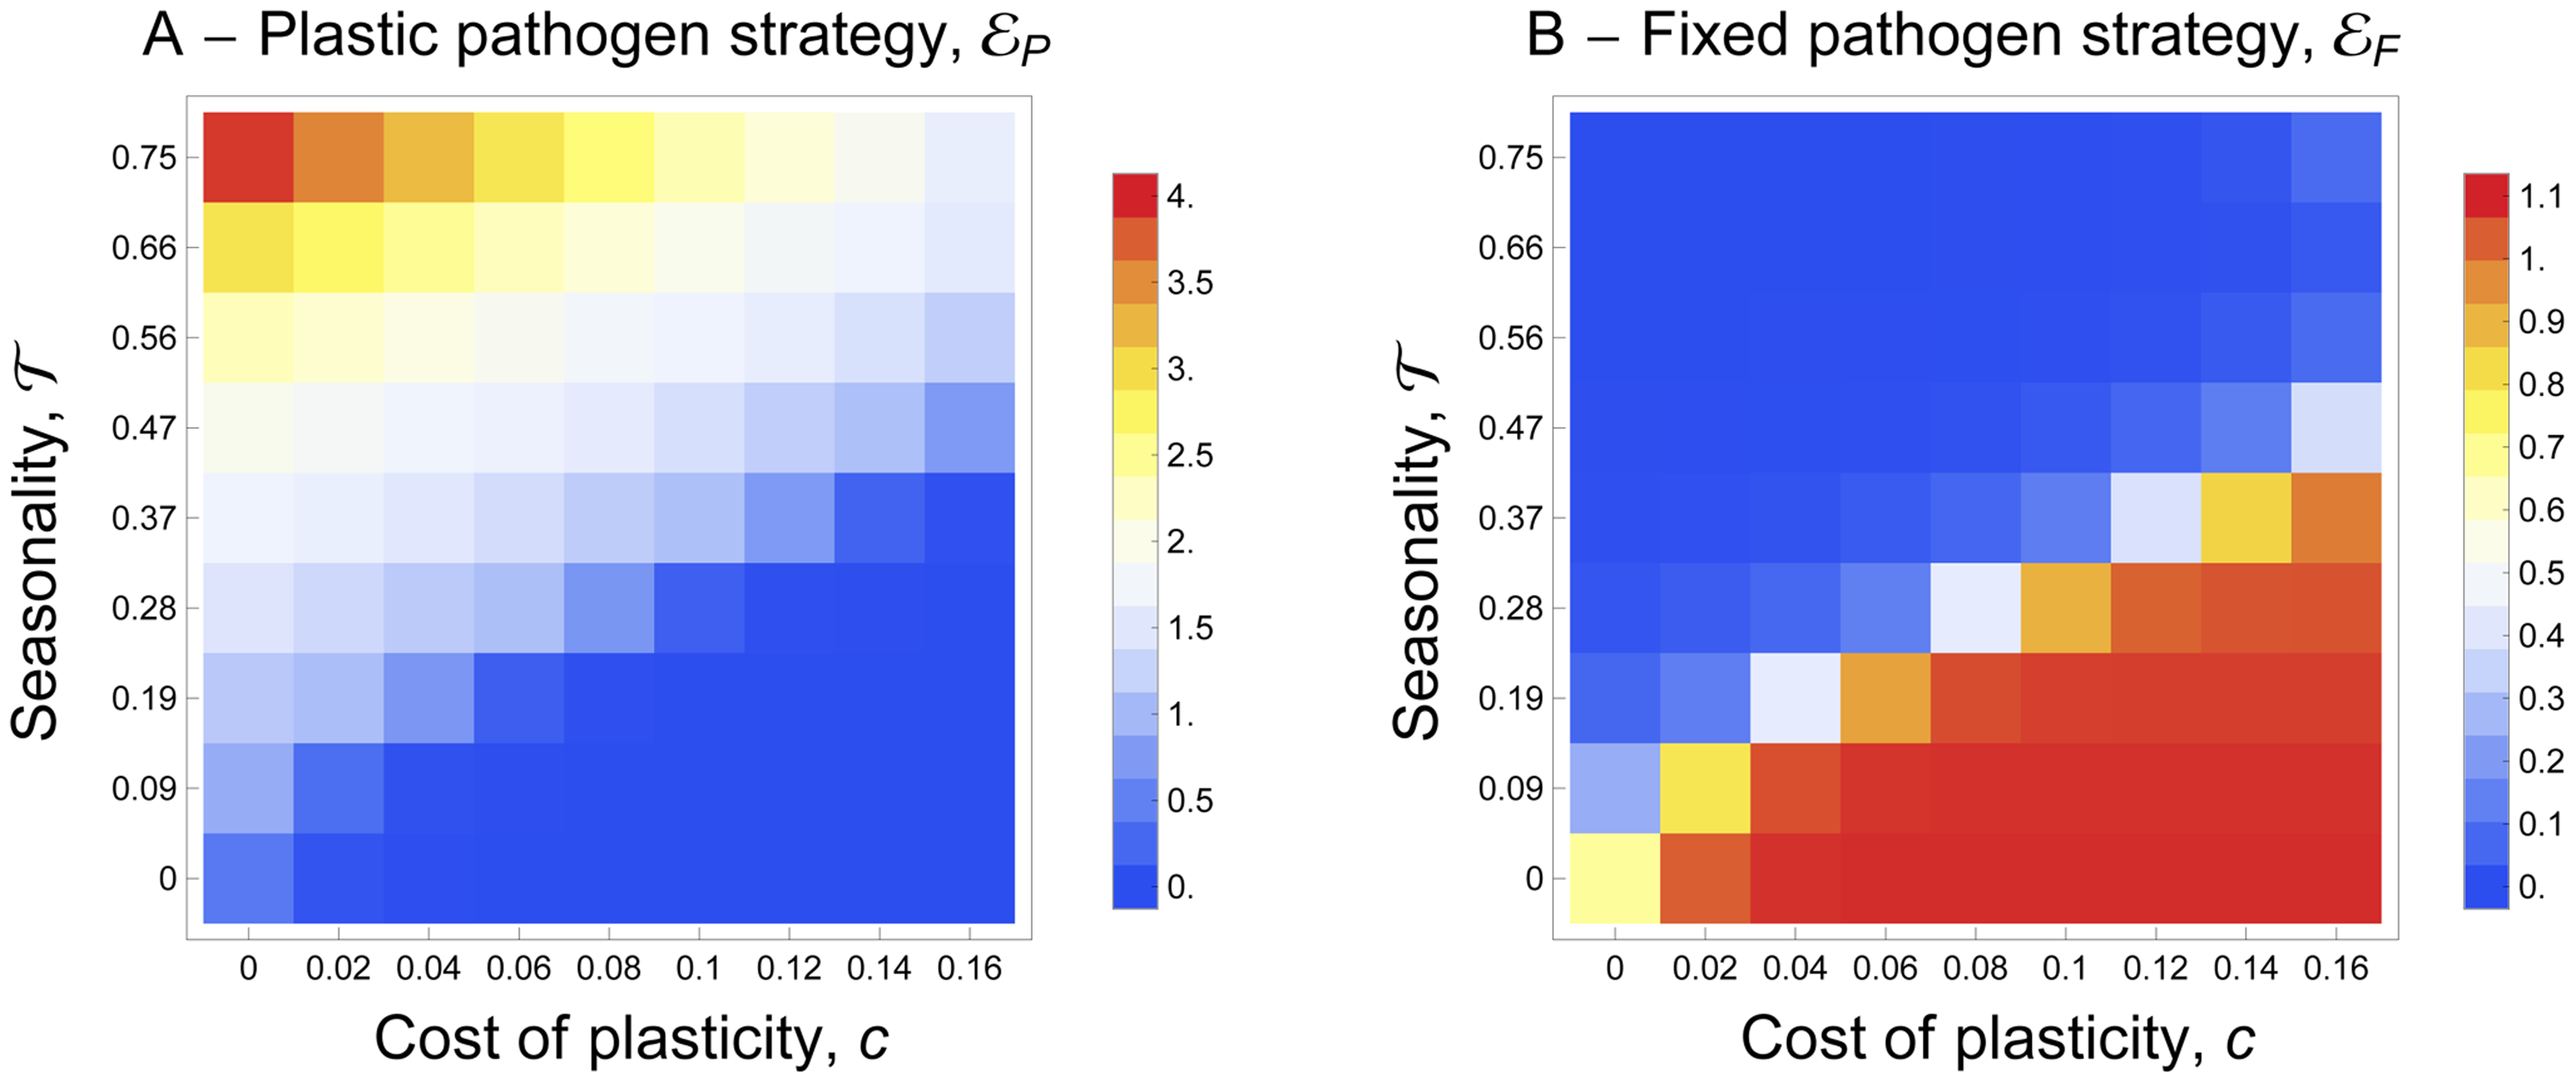 Joint evolution of (A) the plastic pathogen strategy, <i>ε<sub>P</sub></i> and of (B) the fixed pathogen strategy, <i>ε<sub>F</sub></i> for different values of seasonality, <i>τ</i>, and for different costs of plasticity, <i>c</i>.